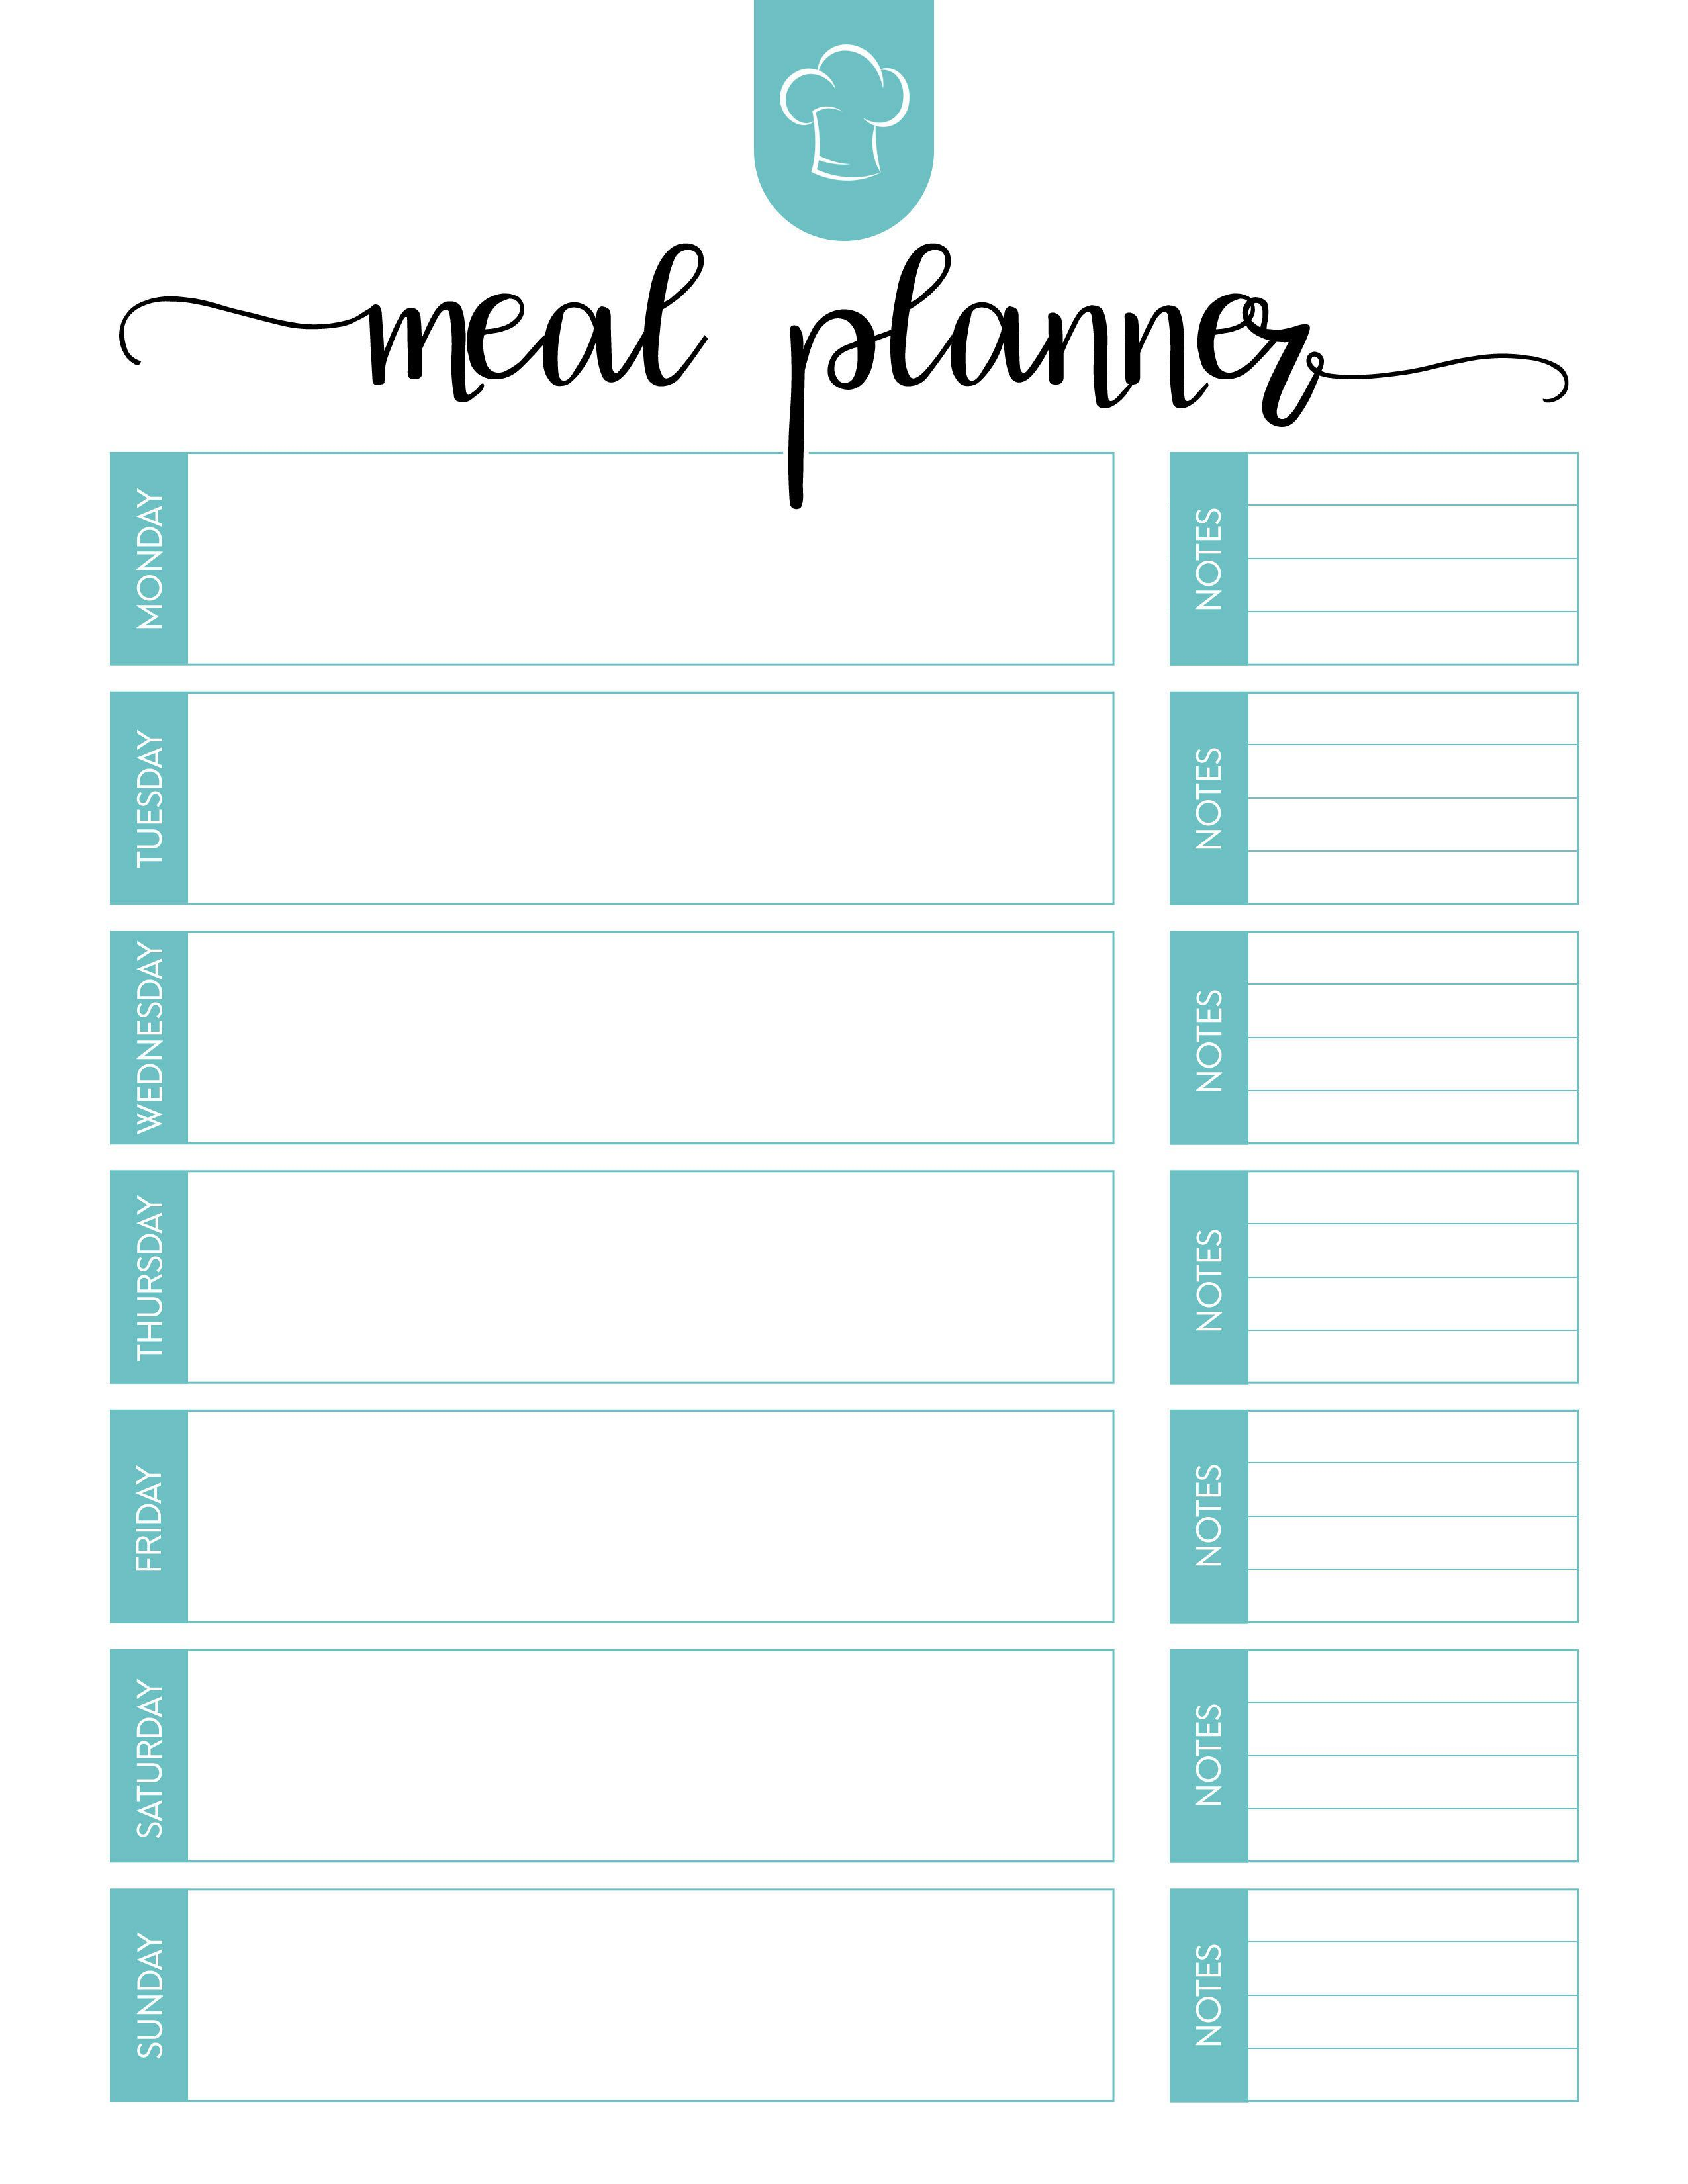 006 Fearsome 2 Week Meal Plan Printable Inspiration Full